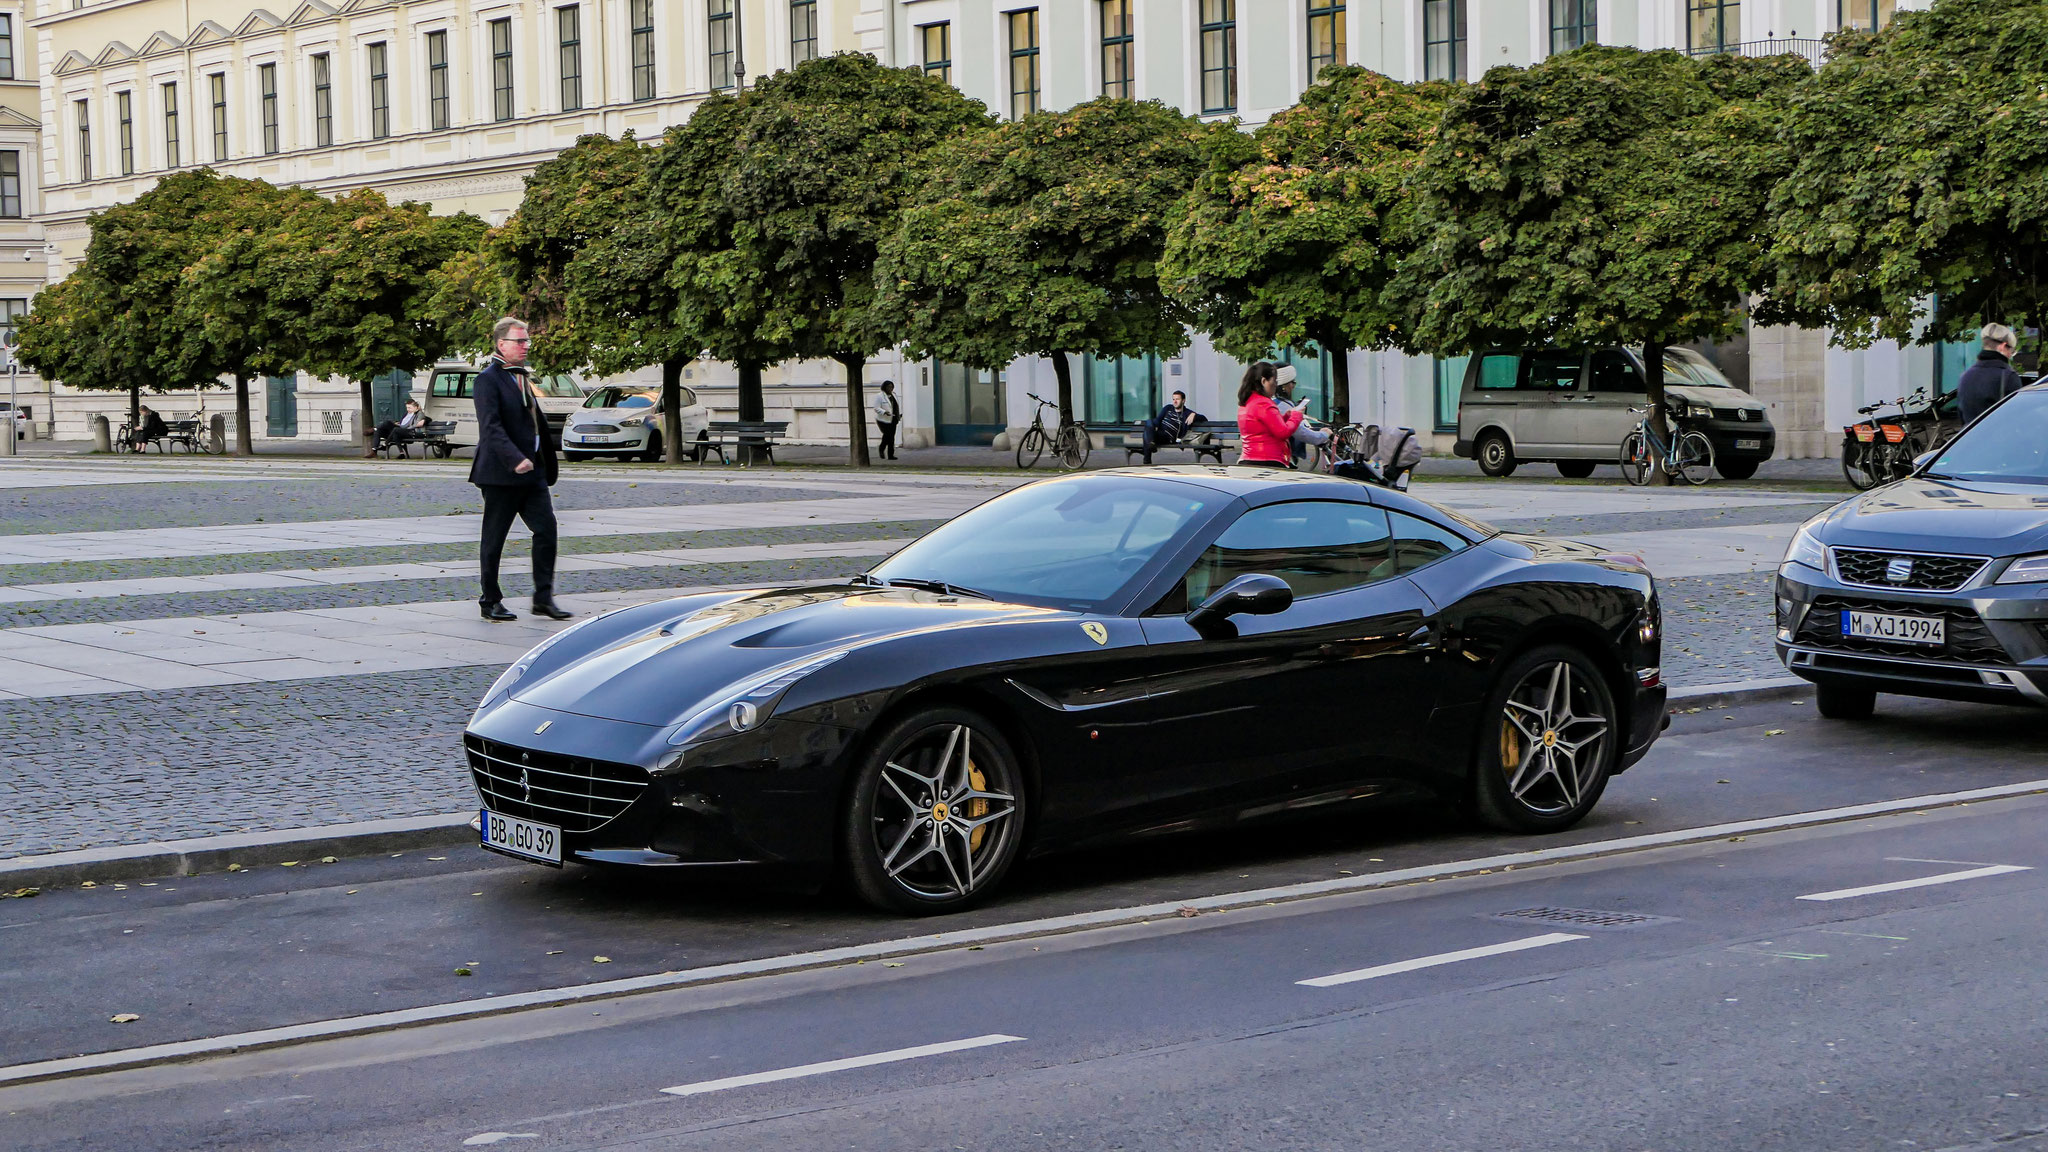 Ferrari California T - BB-GO-39